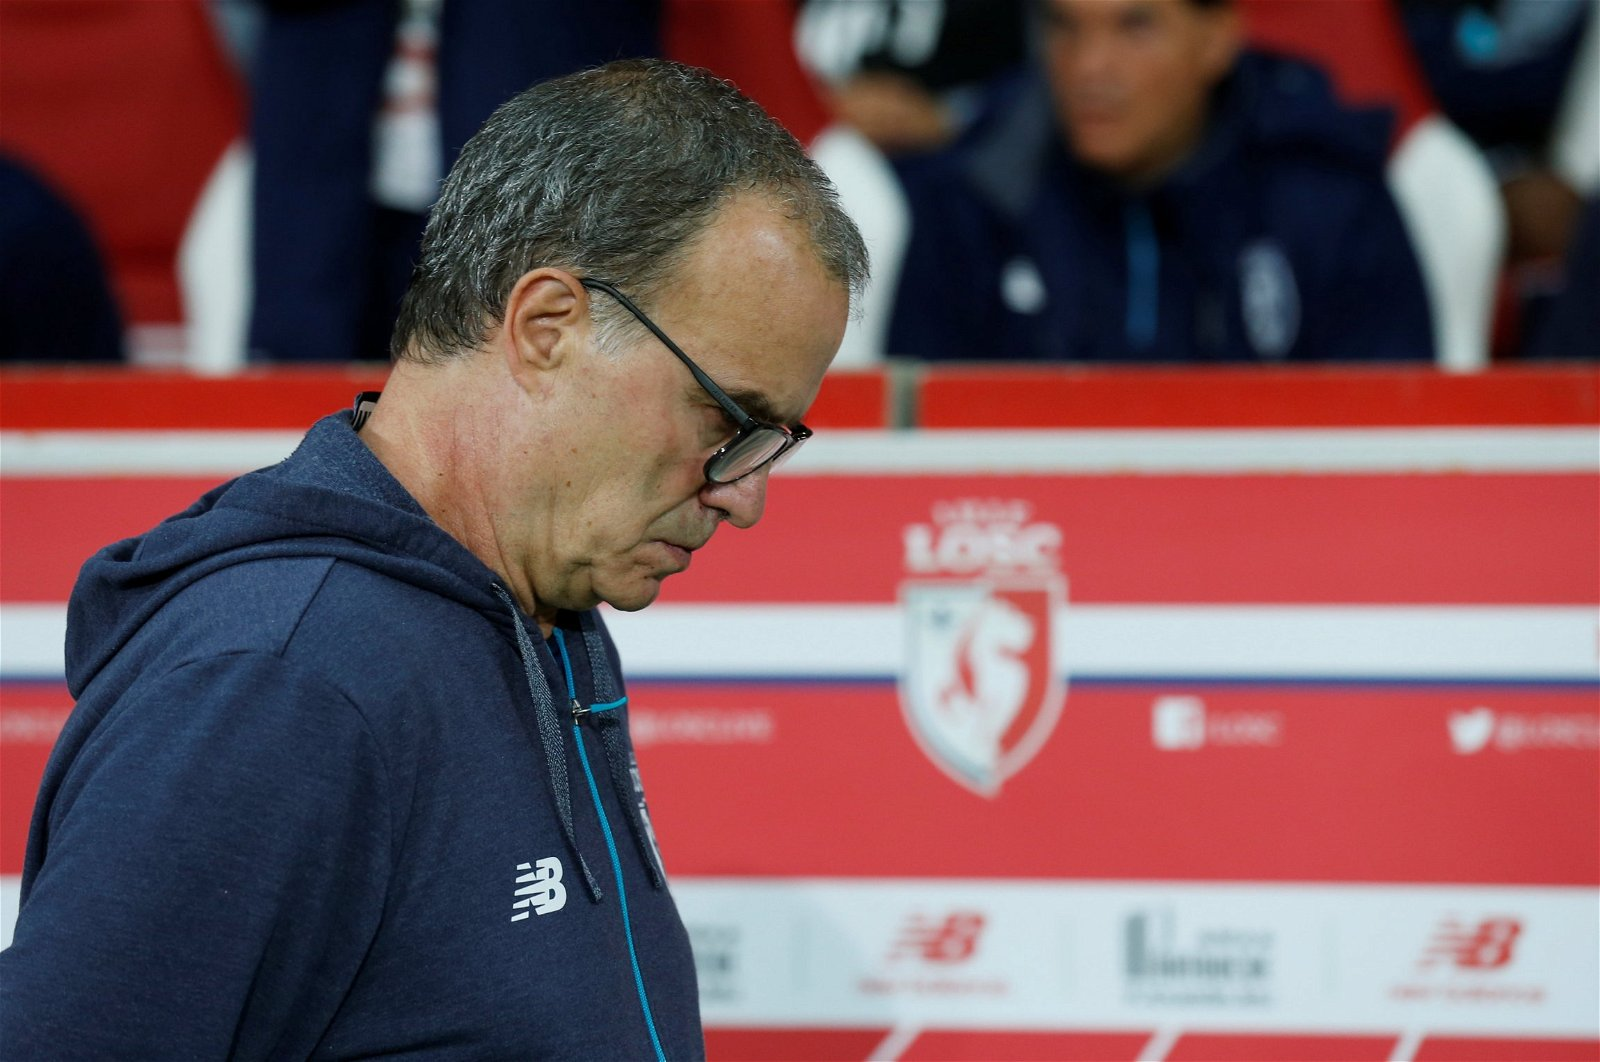 Marcelo Bielsa deep in thought